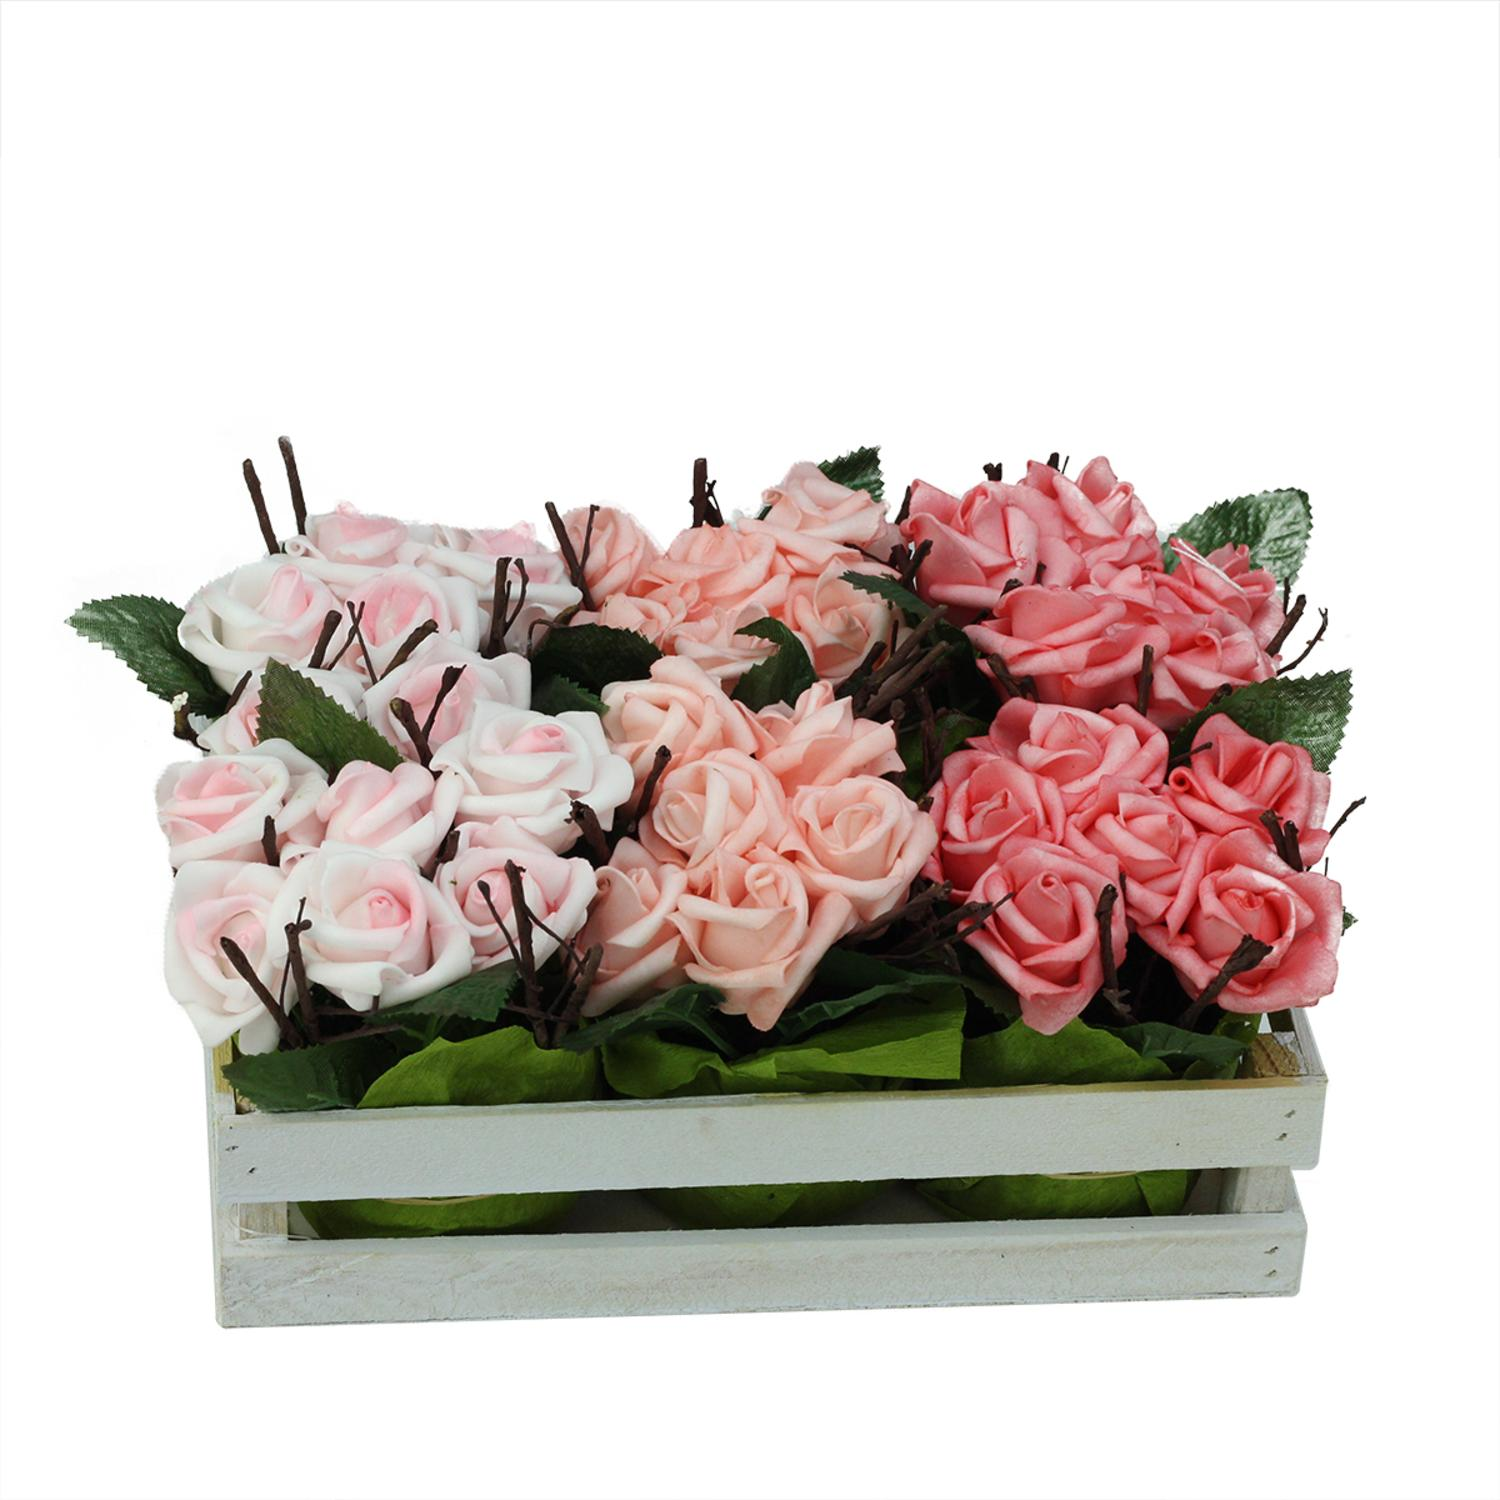 Set of 6 Artificial Pink Rose Plants in Crate Spring Table Top Decoration 9.5""